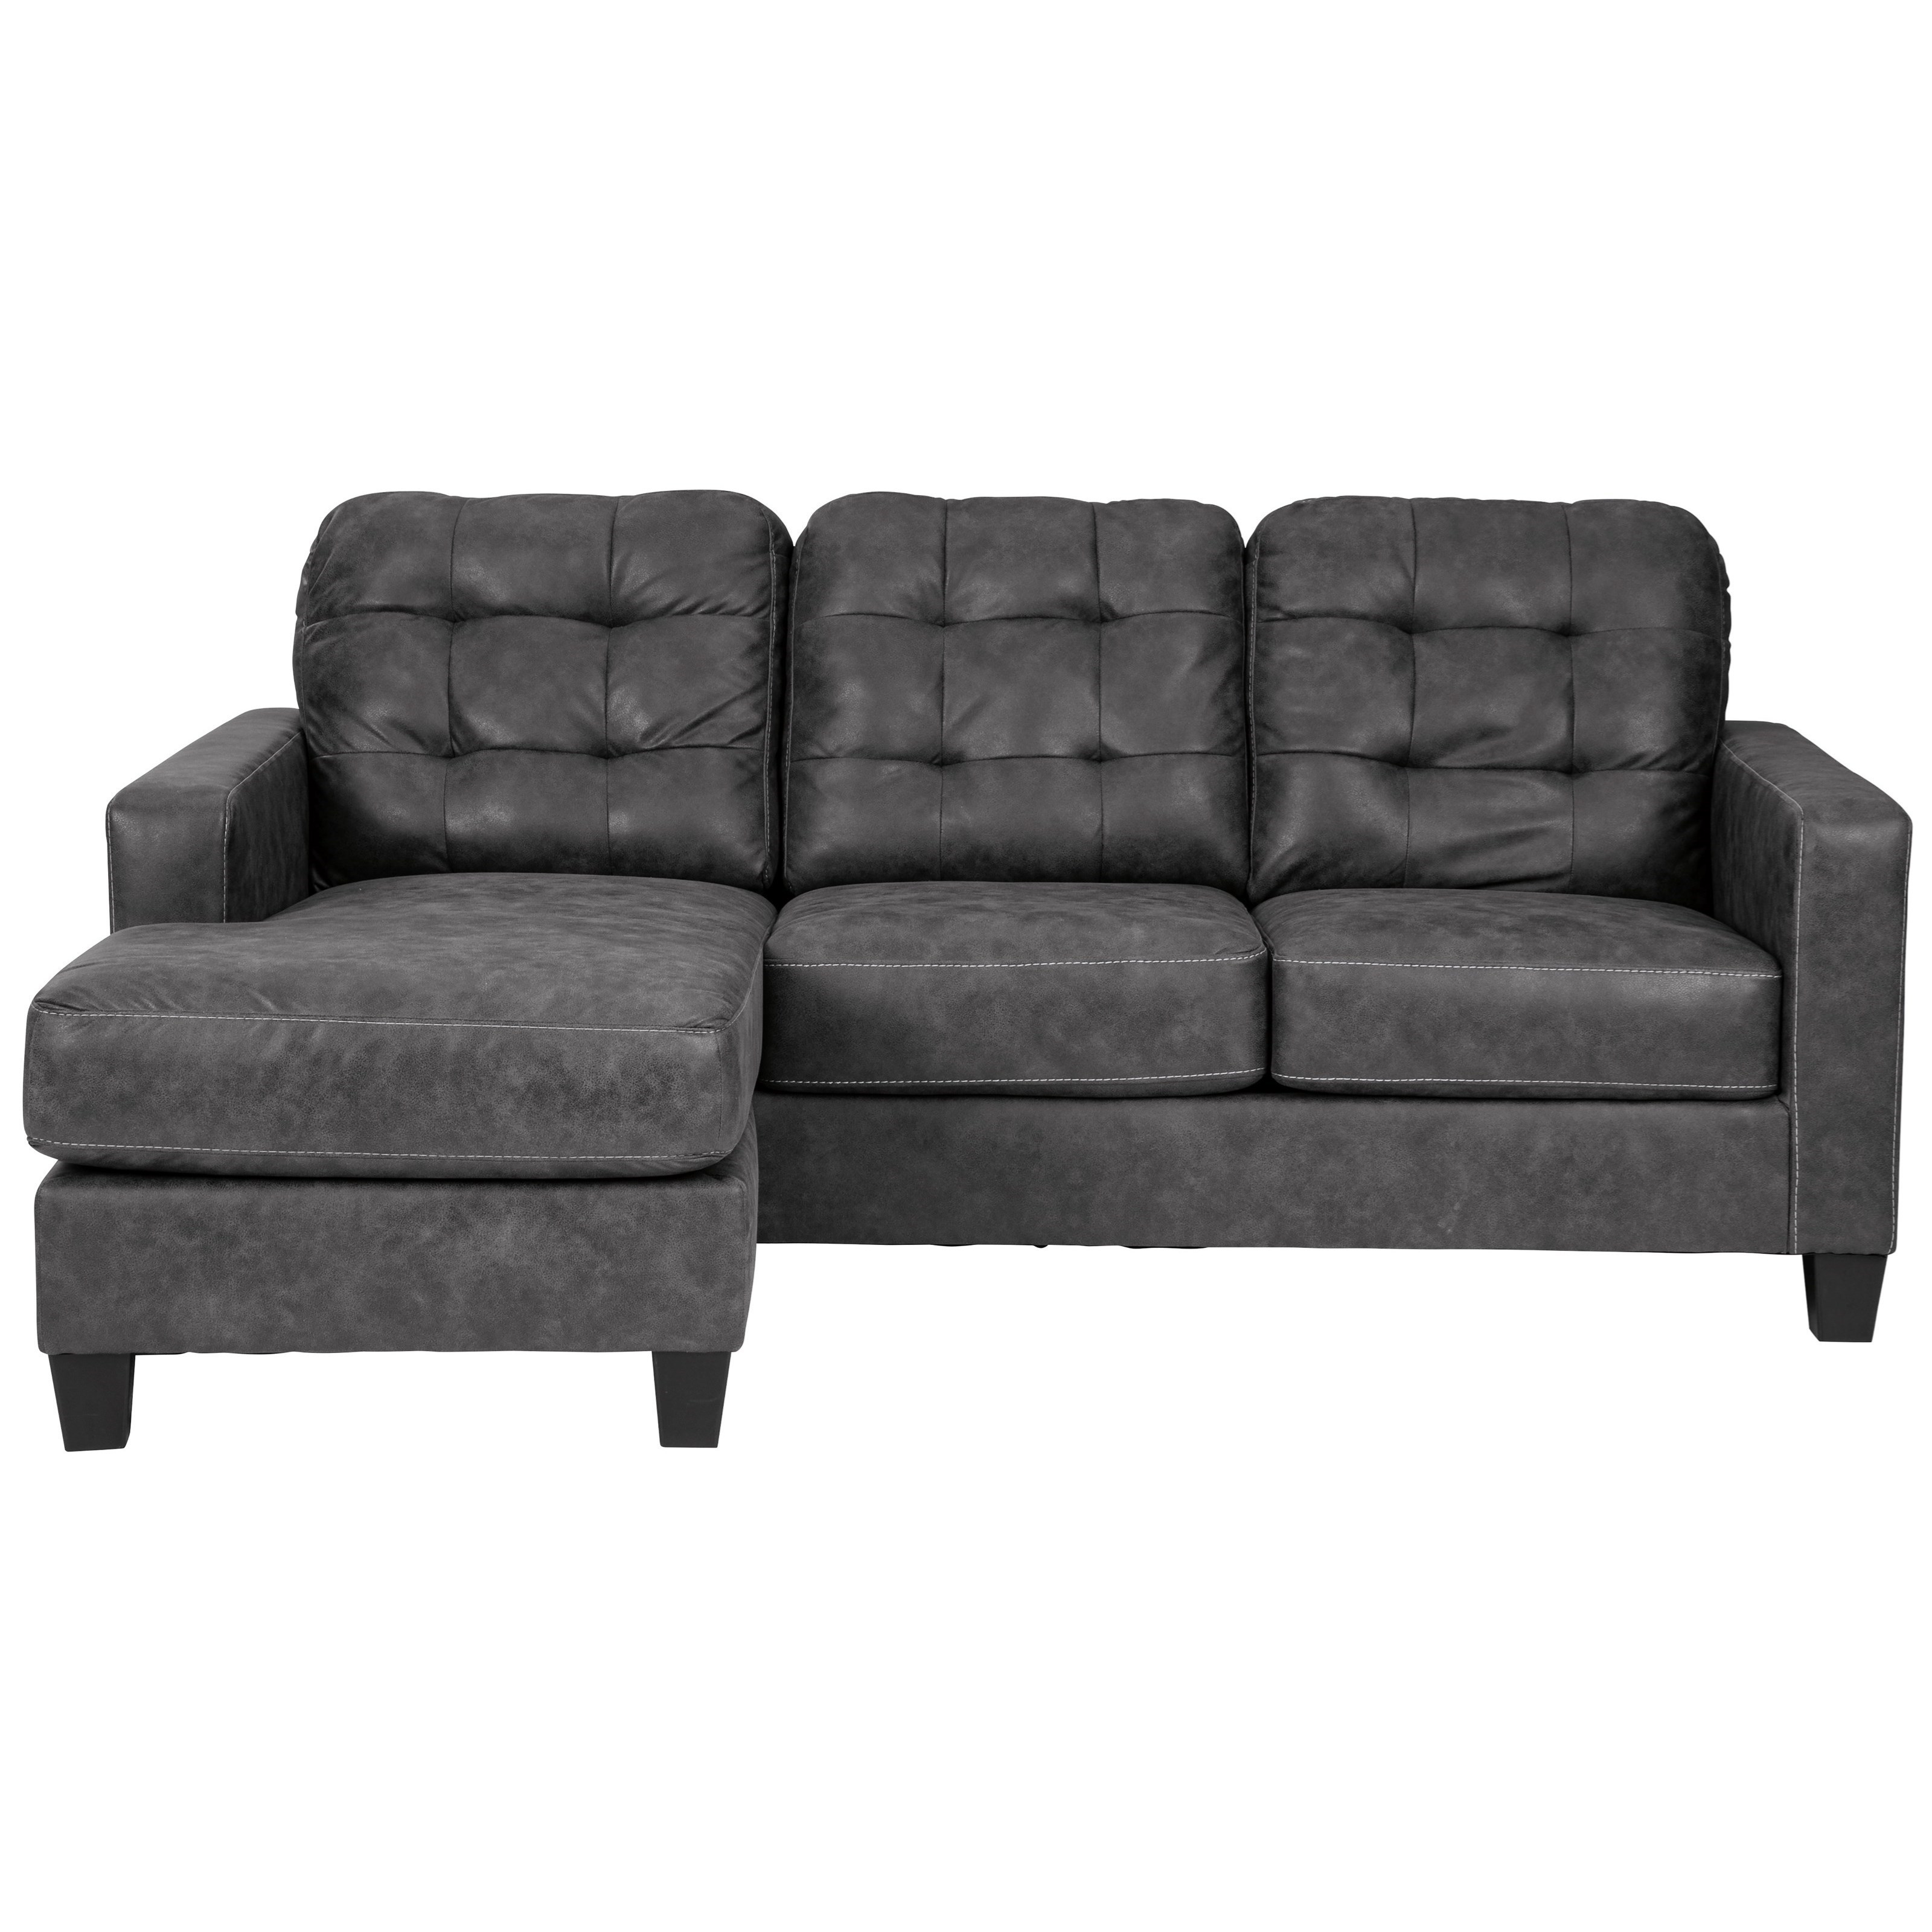 - Benchcraft By Ashley Venaldi Contemporary Queen Sleeper Sofa With